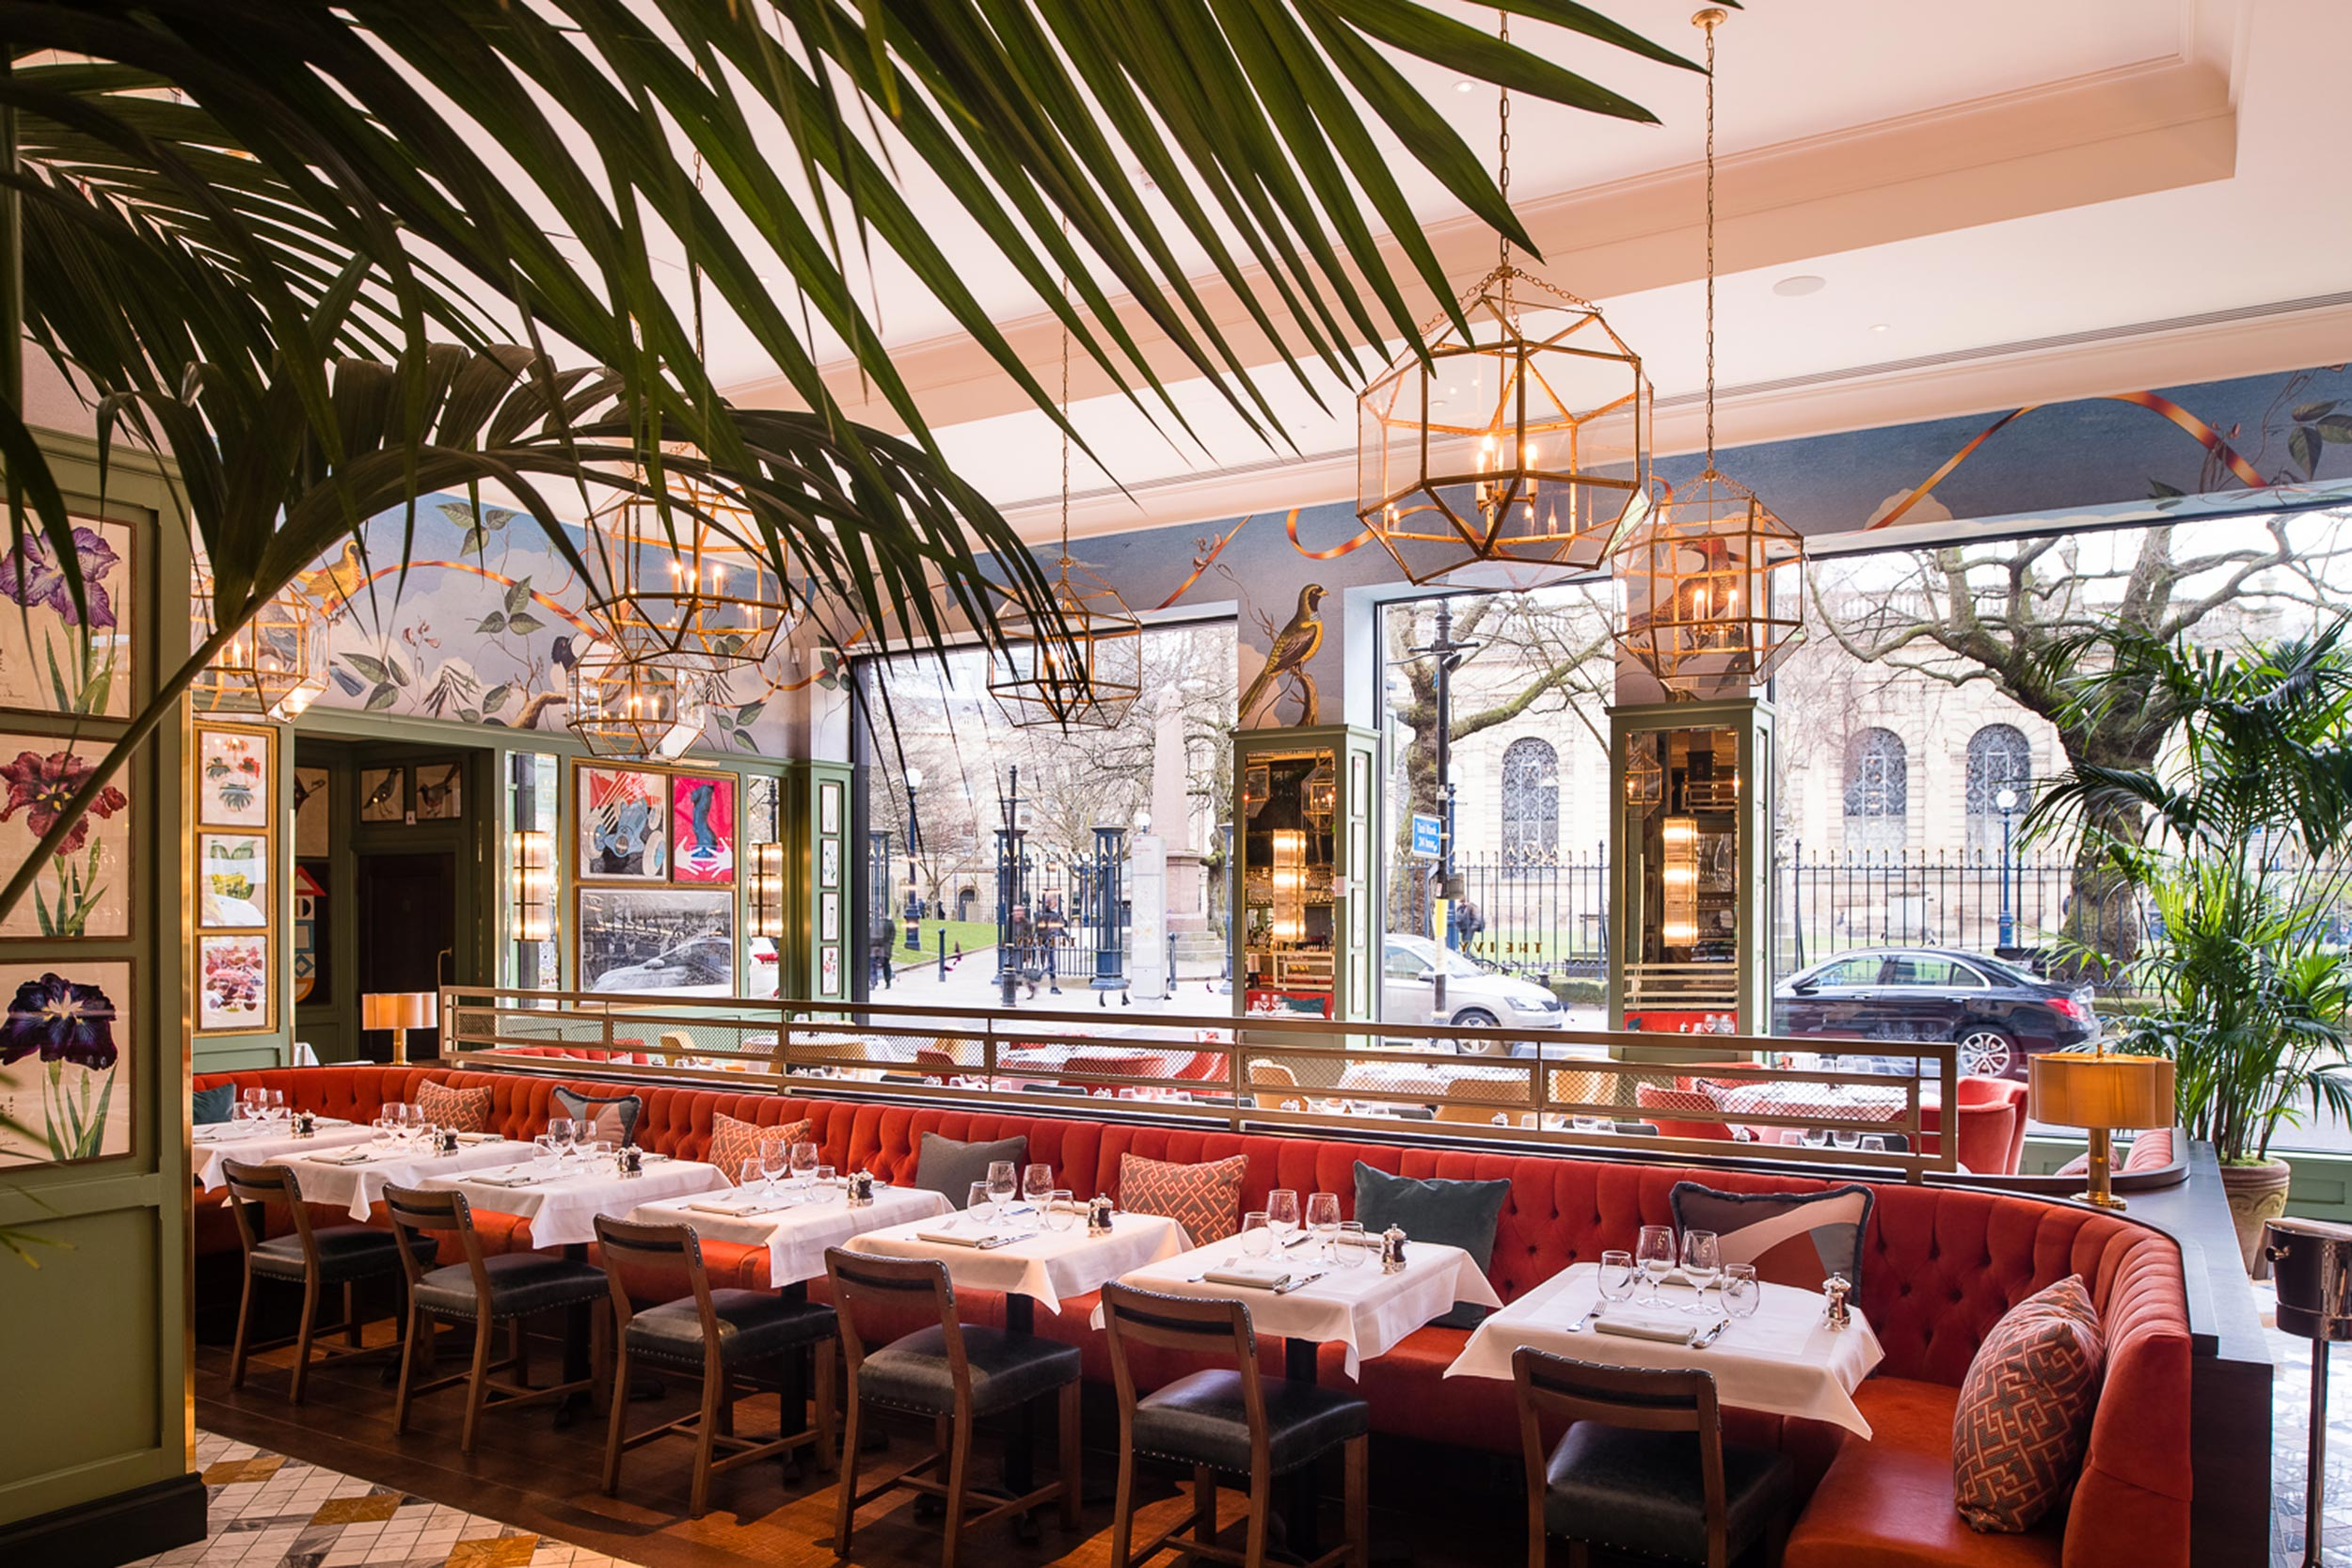 All Day Casual Dining Restaurant The Ivy Temple Row